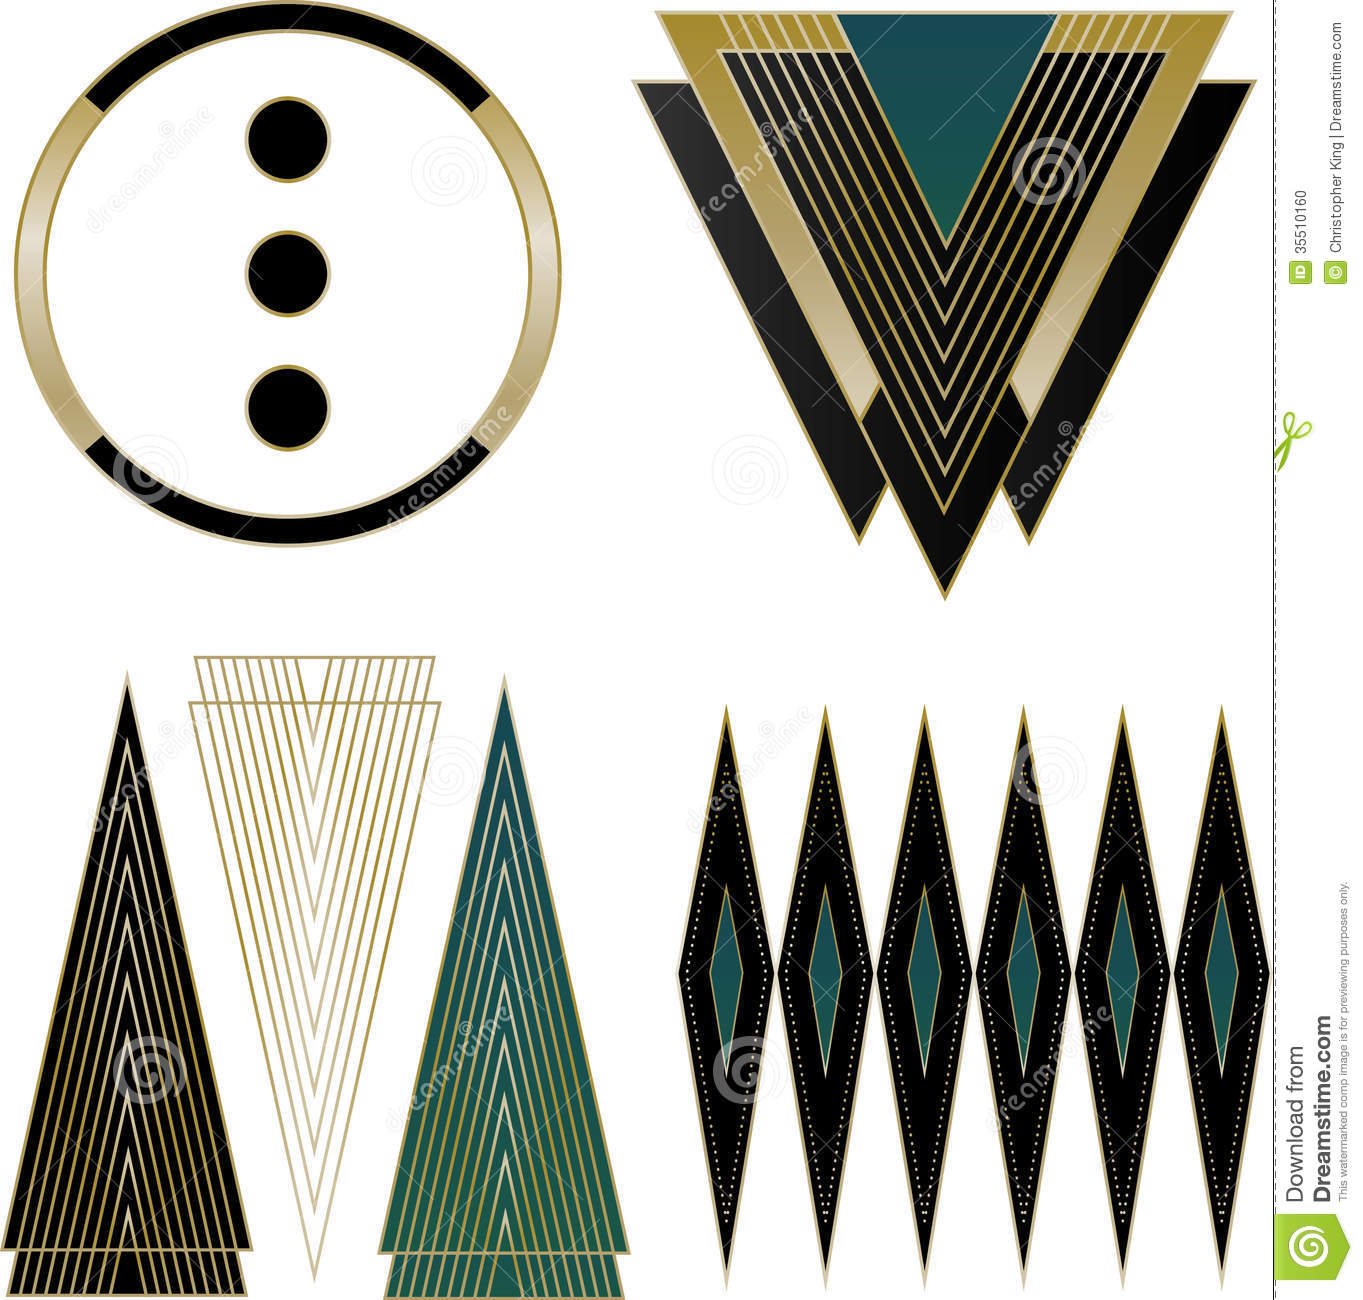 Designer Deko 9 Art Deco Graphic Design Images Art Deco Designs Free